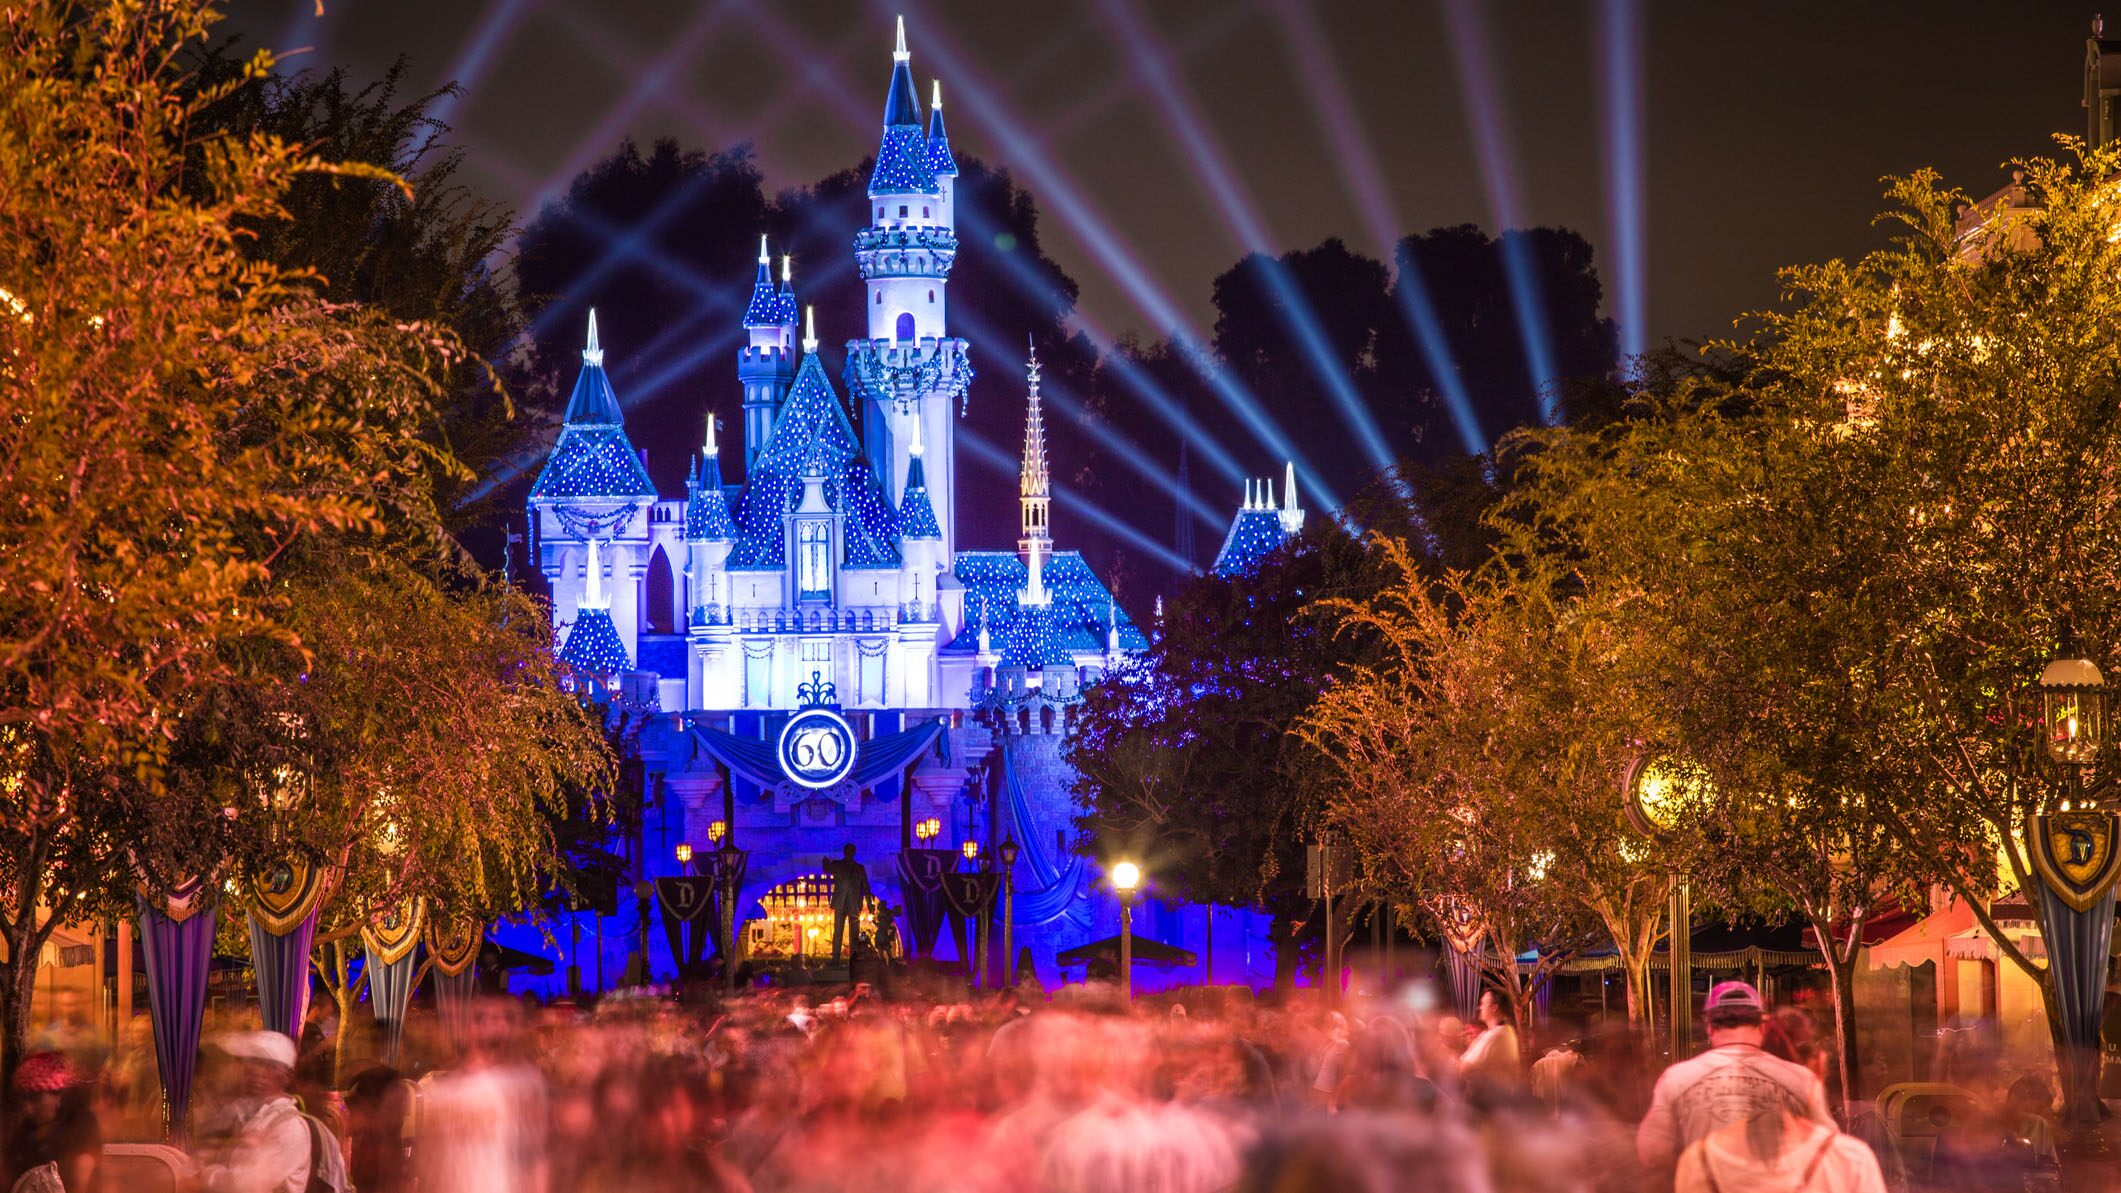 Disneyland hit capacity on Friday, stopped selling tickets